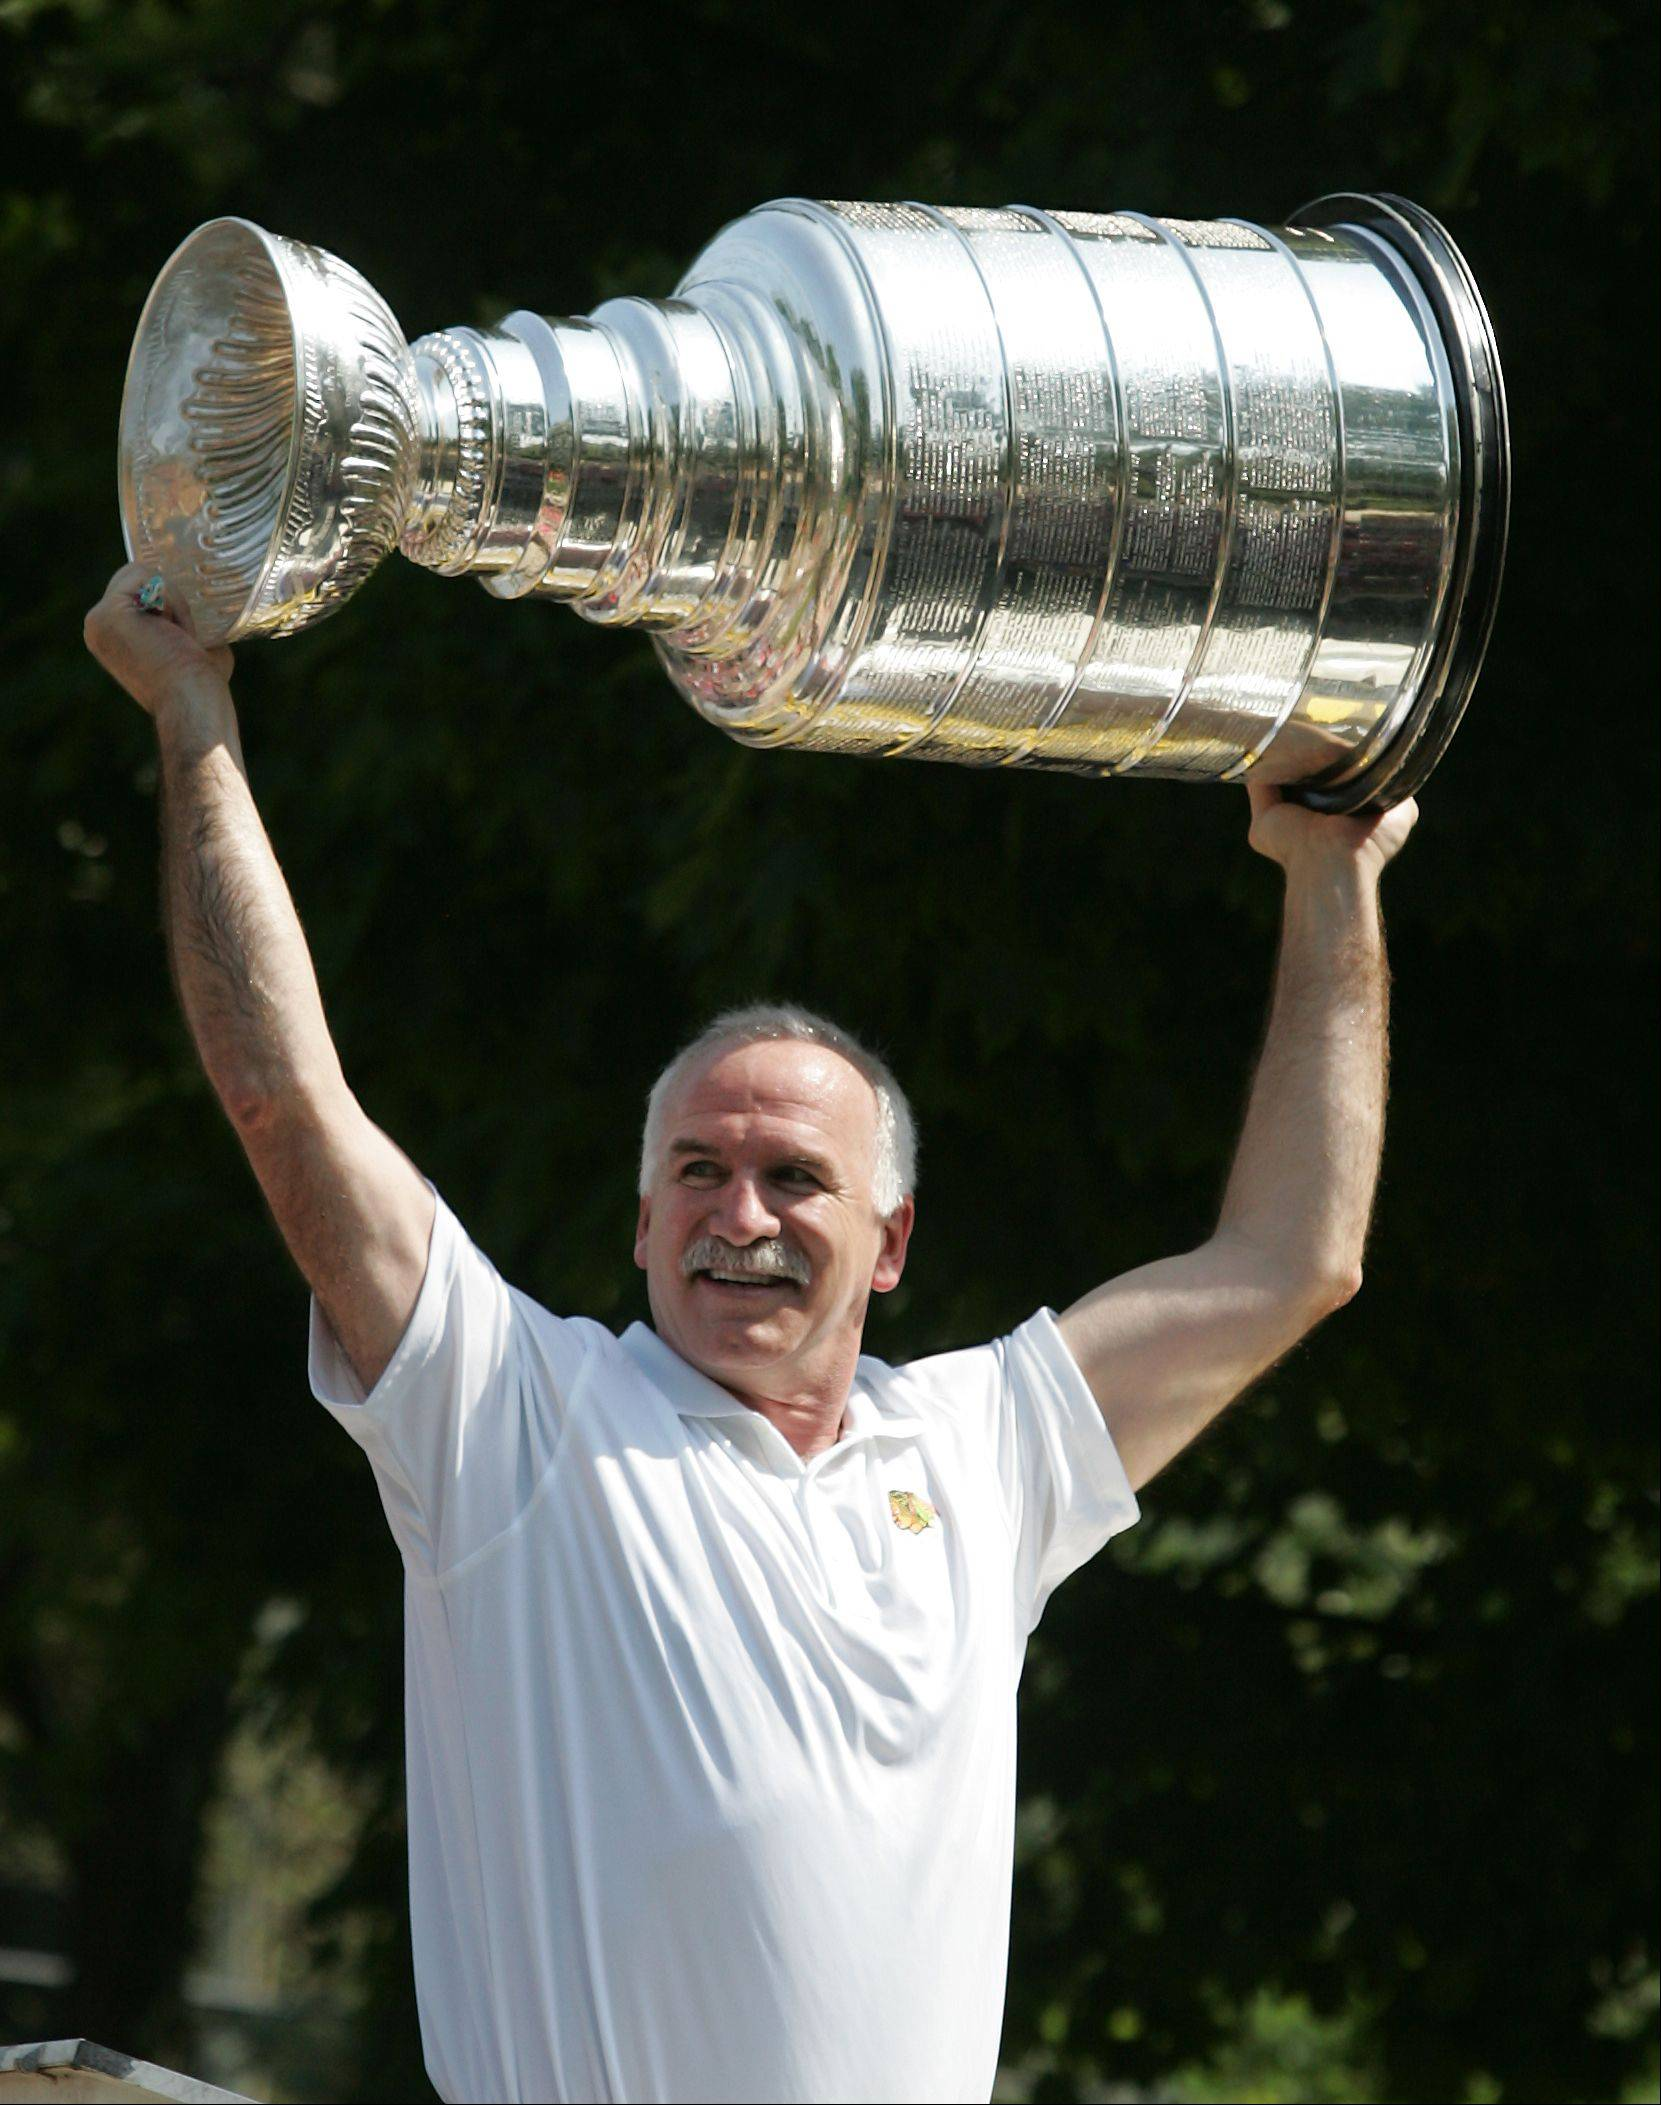 Chicago Blackhawks coach Joel Quenneville lifts the Stanley Cup during Hinsdale's Fourth of July parade Thursday.